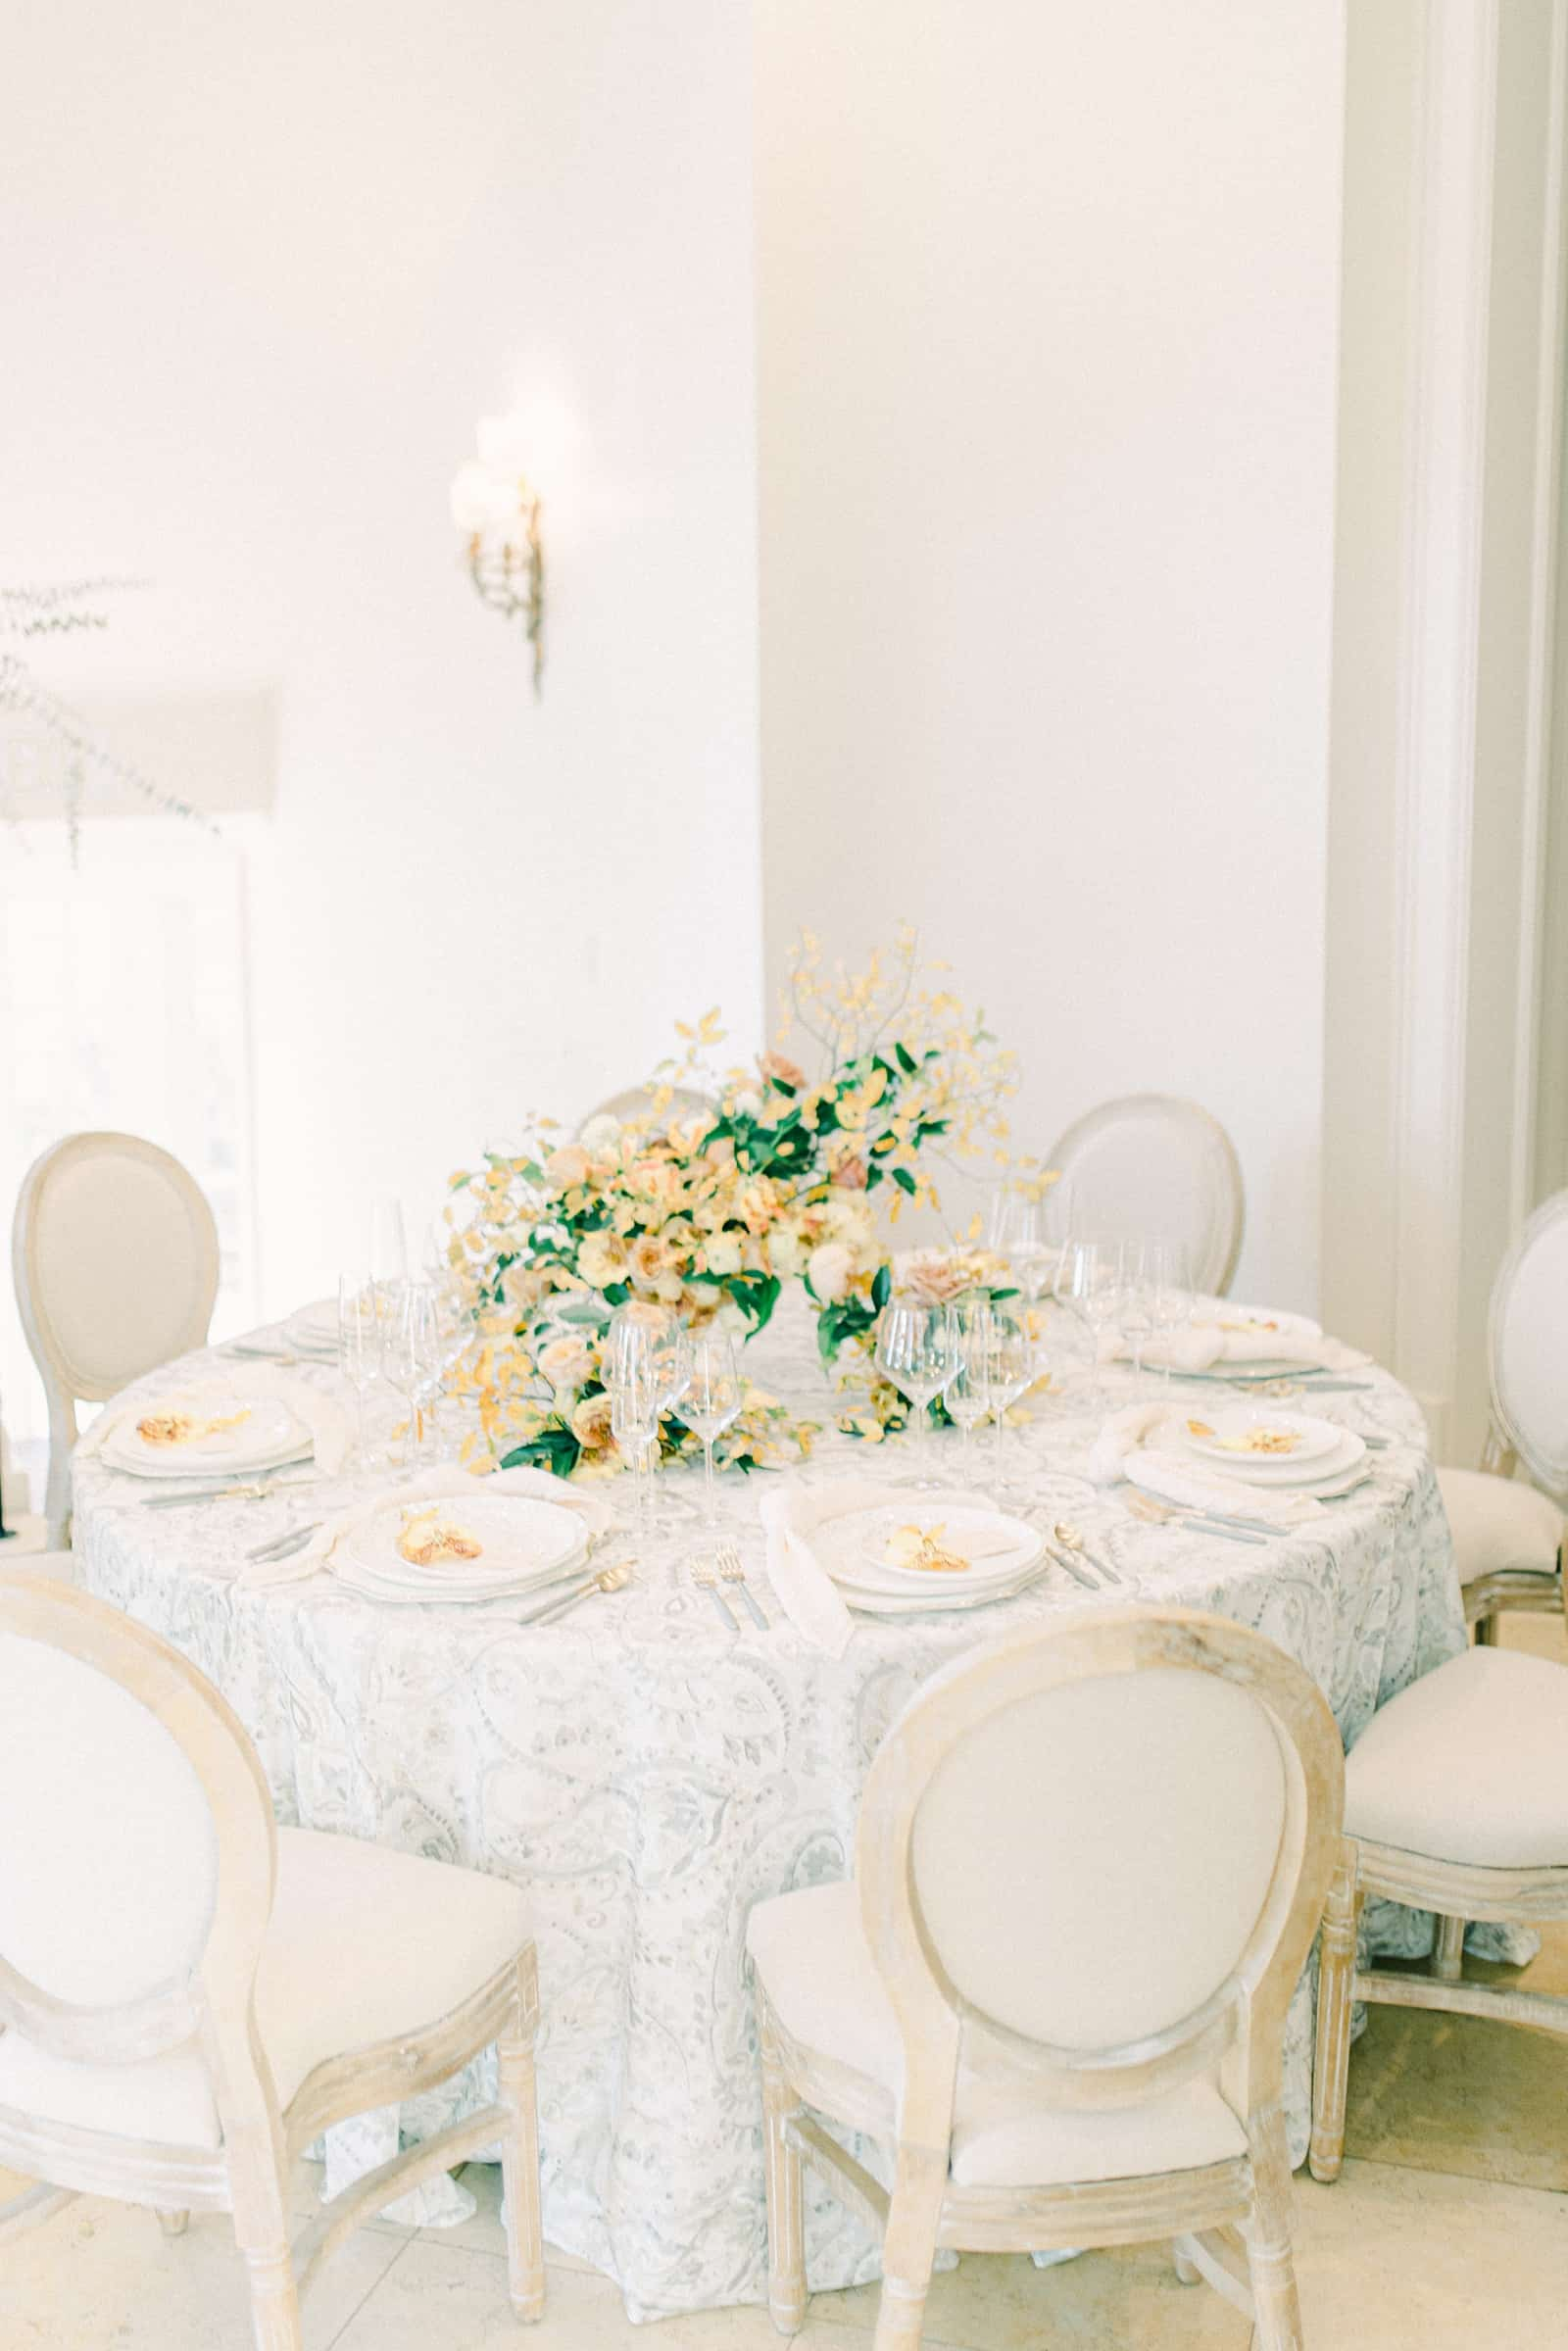 Fine Art wedding table setting with gray damask tablecloth and orange, white and green centerpiece